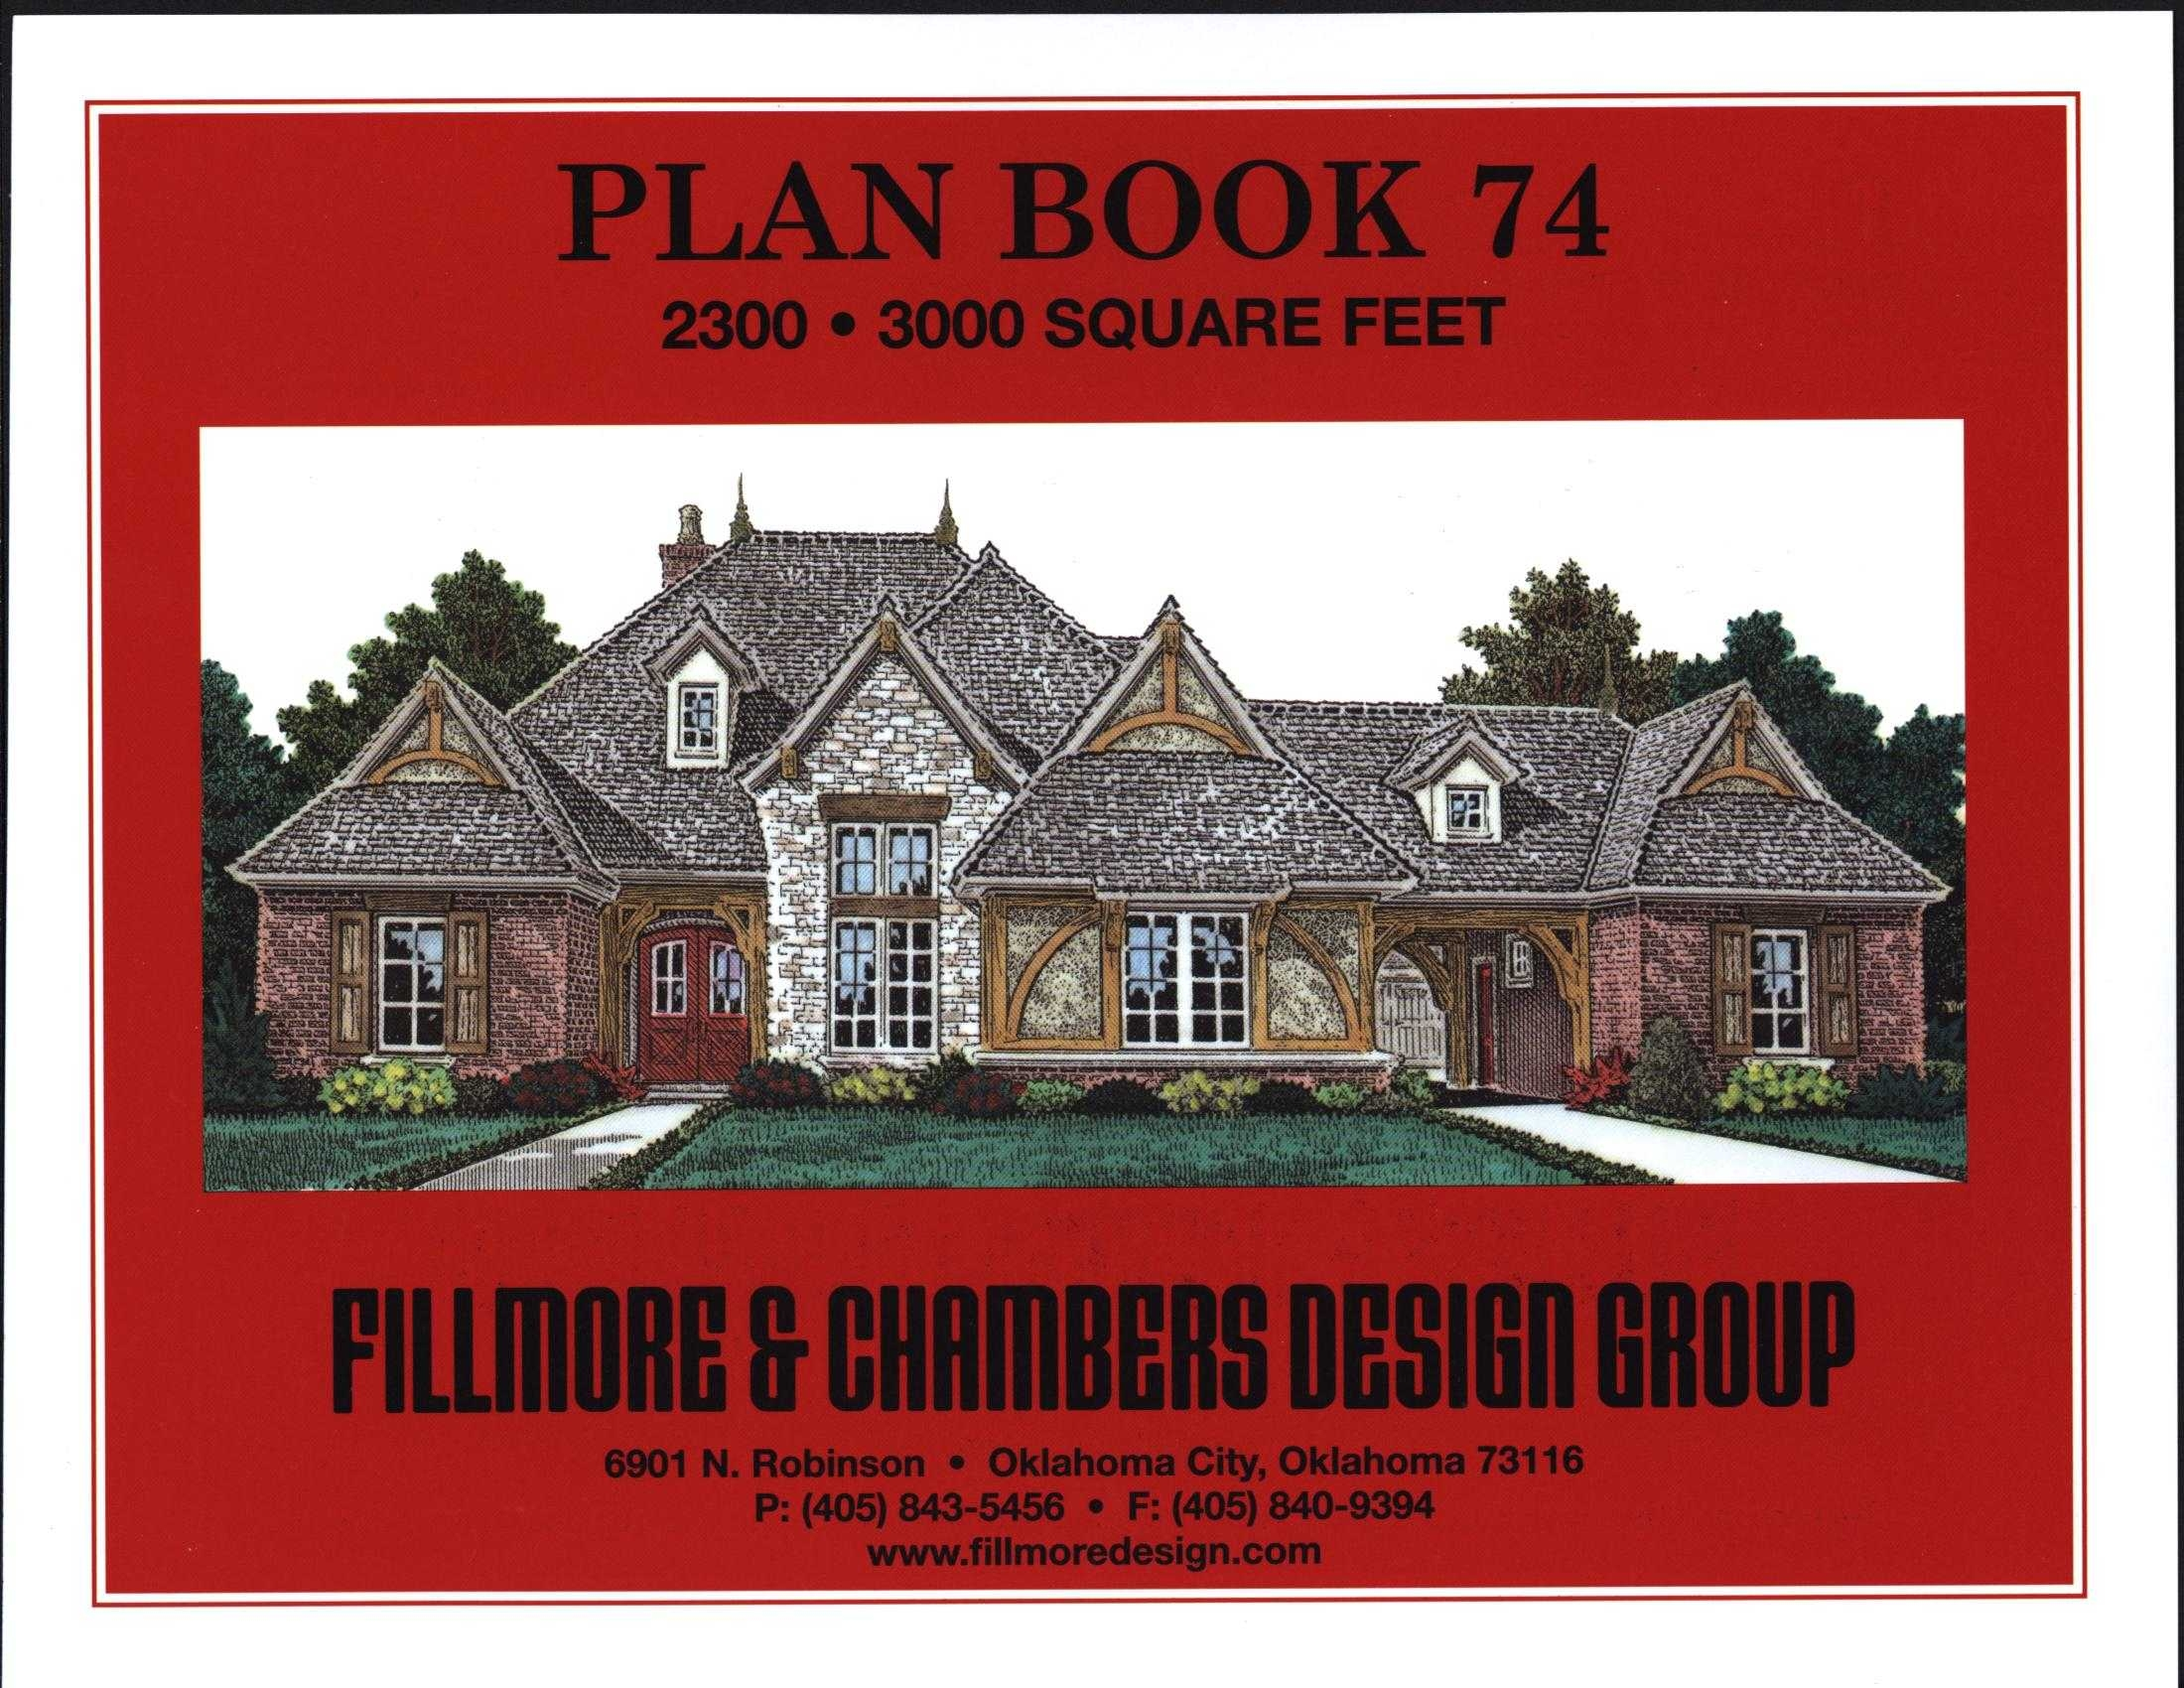 House plans by fillmore design group - House design book ...